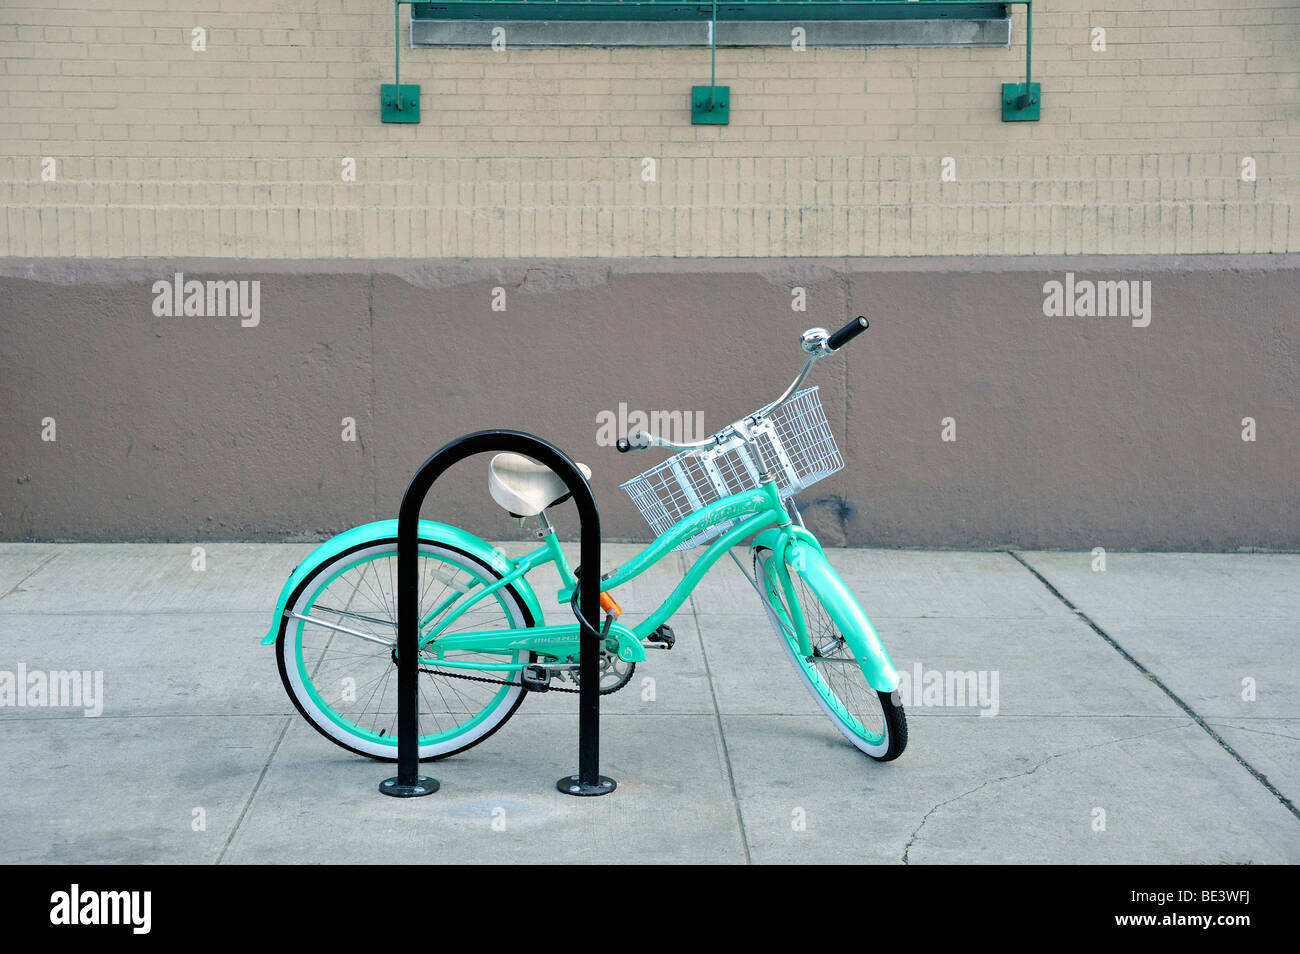 A women's turquoise green open frame Beach Cruiser style bicycle with a basket on the handlebars, locked to a bicycle Stock Photo